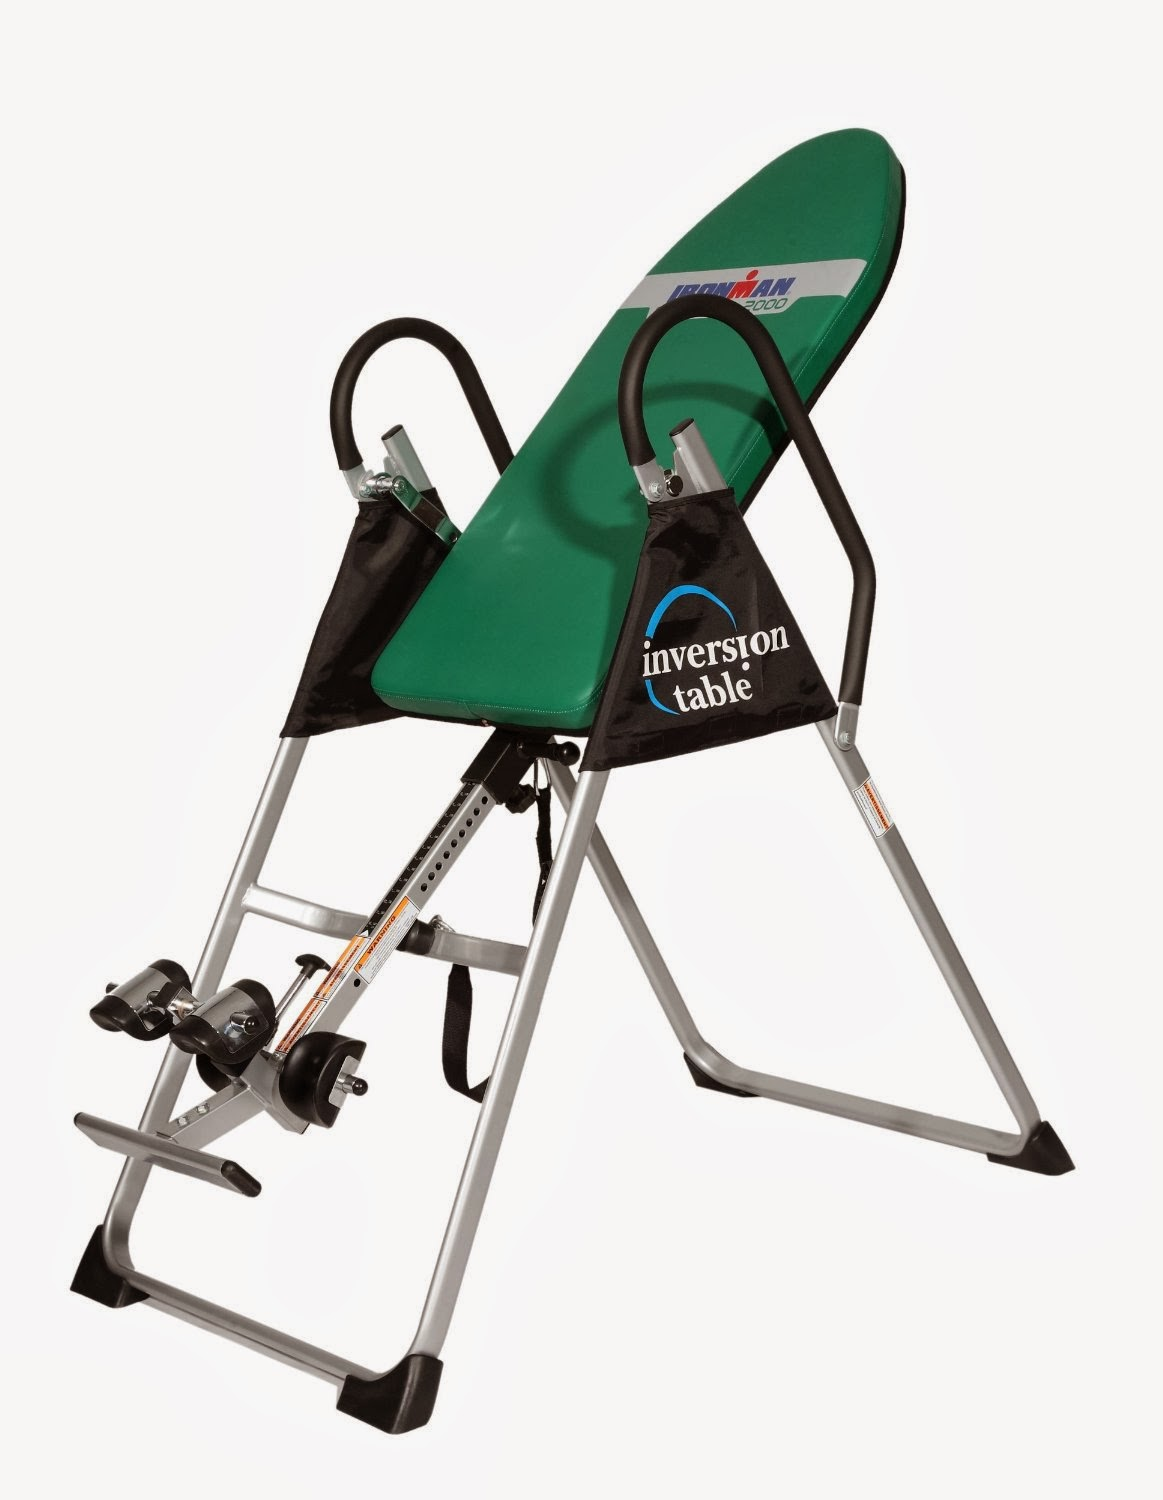 Ironman Gravity 2000 Inversion Table, picture, review features & specifications, compare with Ironman Gravity 4000